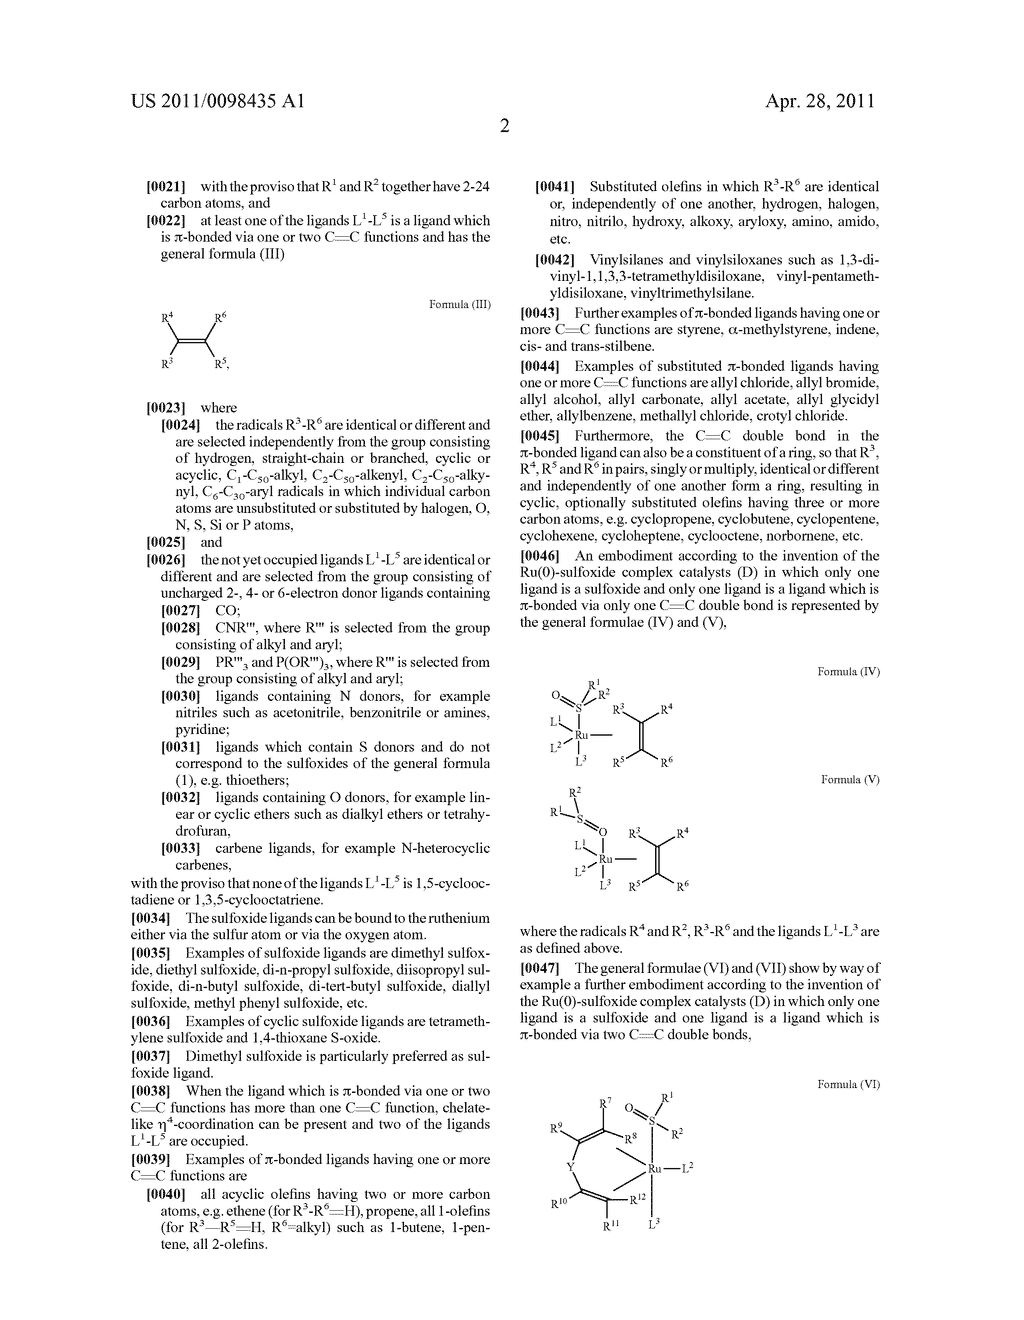 RU SULFOXIDE COMPLEXES, THEIR PREPARATION AND USE - diagram, schematic, and image 03